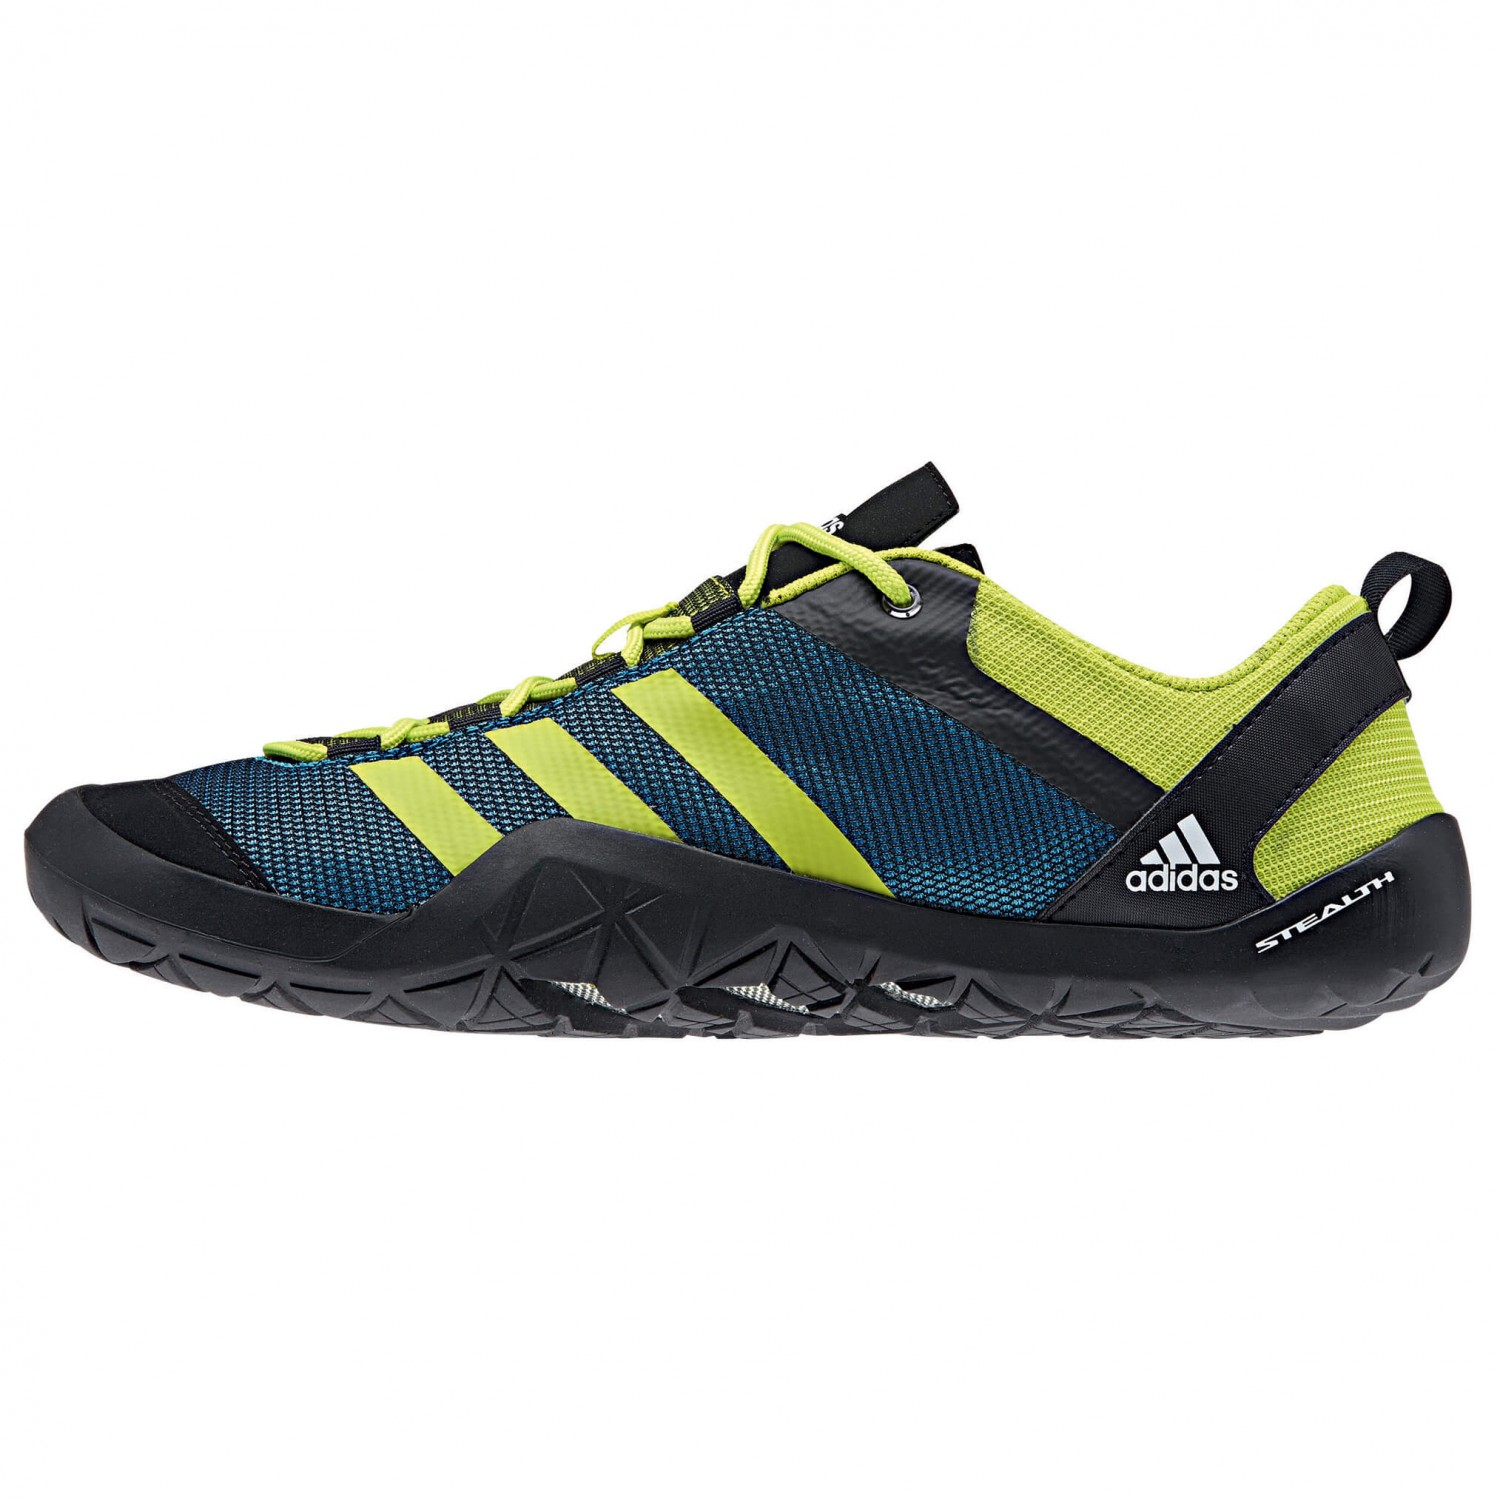 adidas - Climacool Jawpaw Lace - Water shoes ... e6680da2781cd